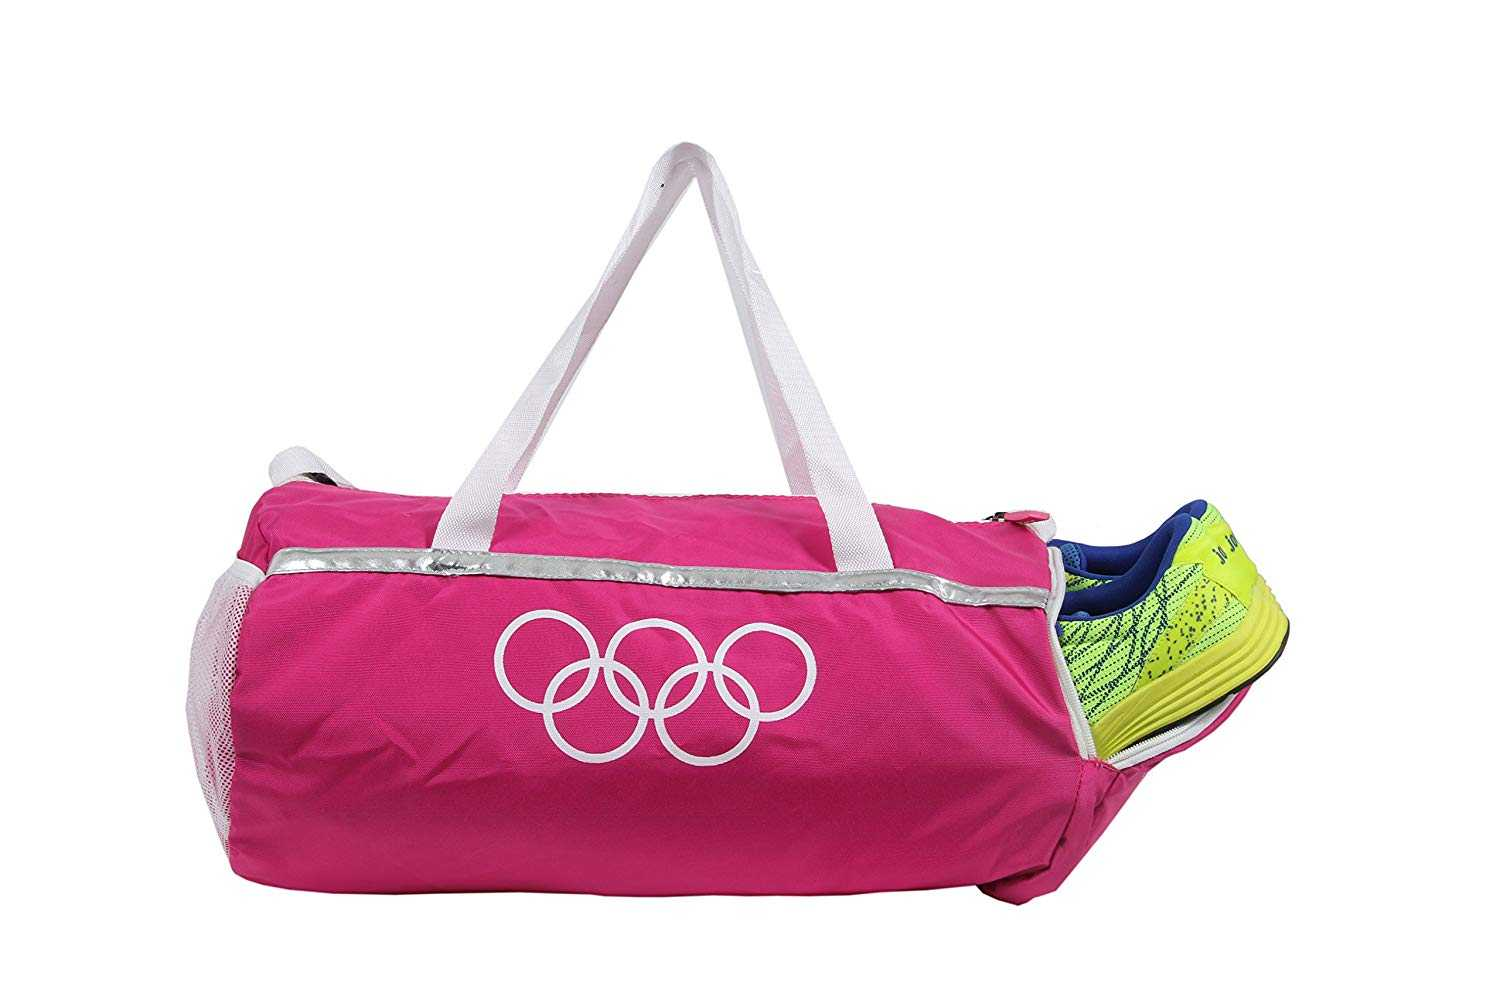 duffle bag for women